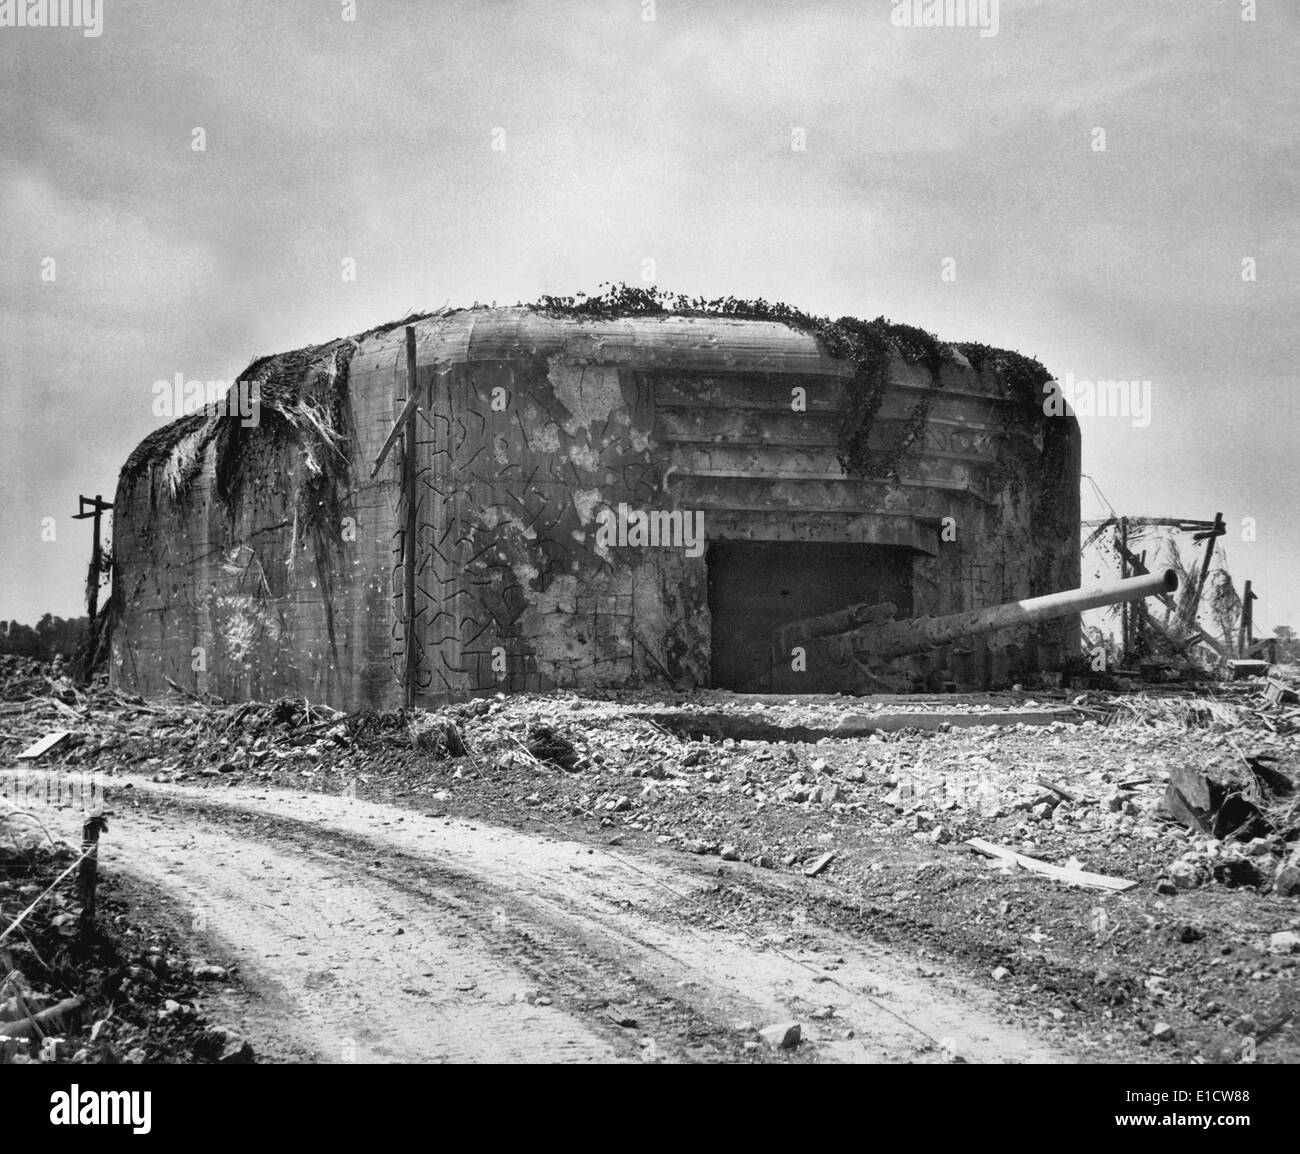 German gun emplacement had concrete walls 13 feet thick and four 10 1/4 inch guns. This position was taken out of action by - Stock Image